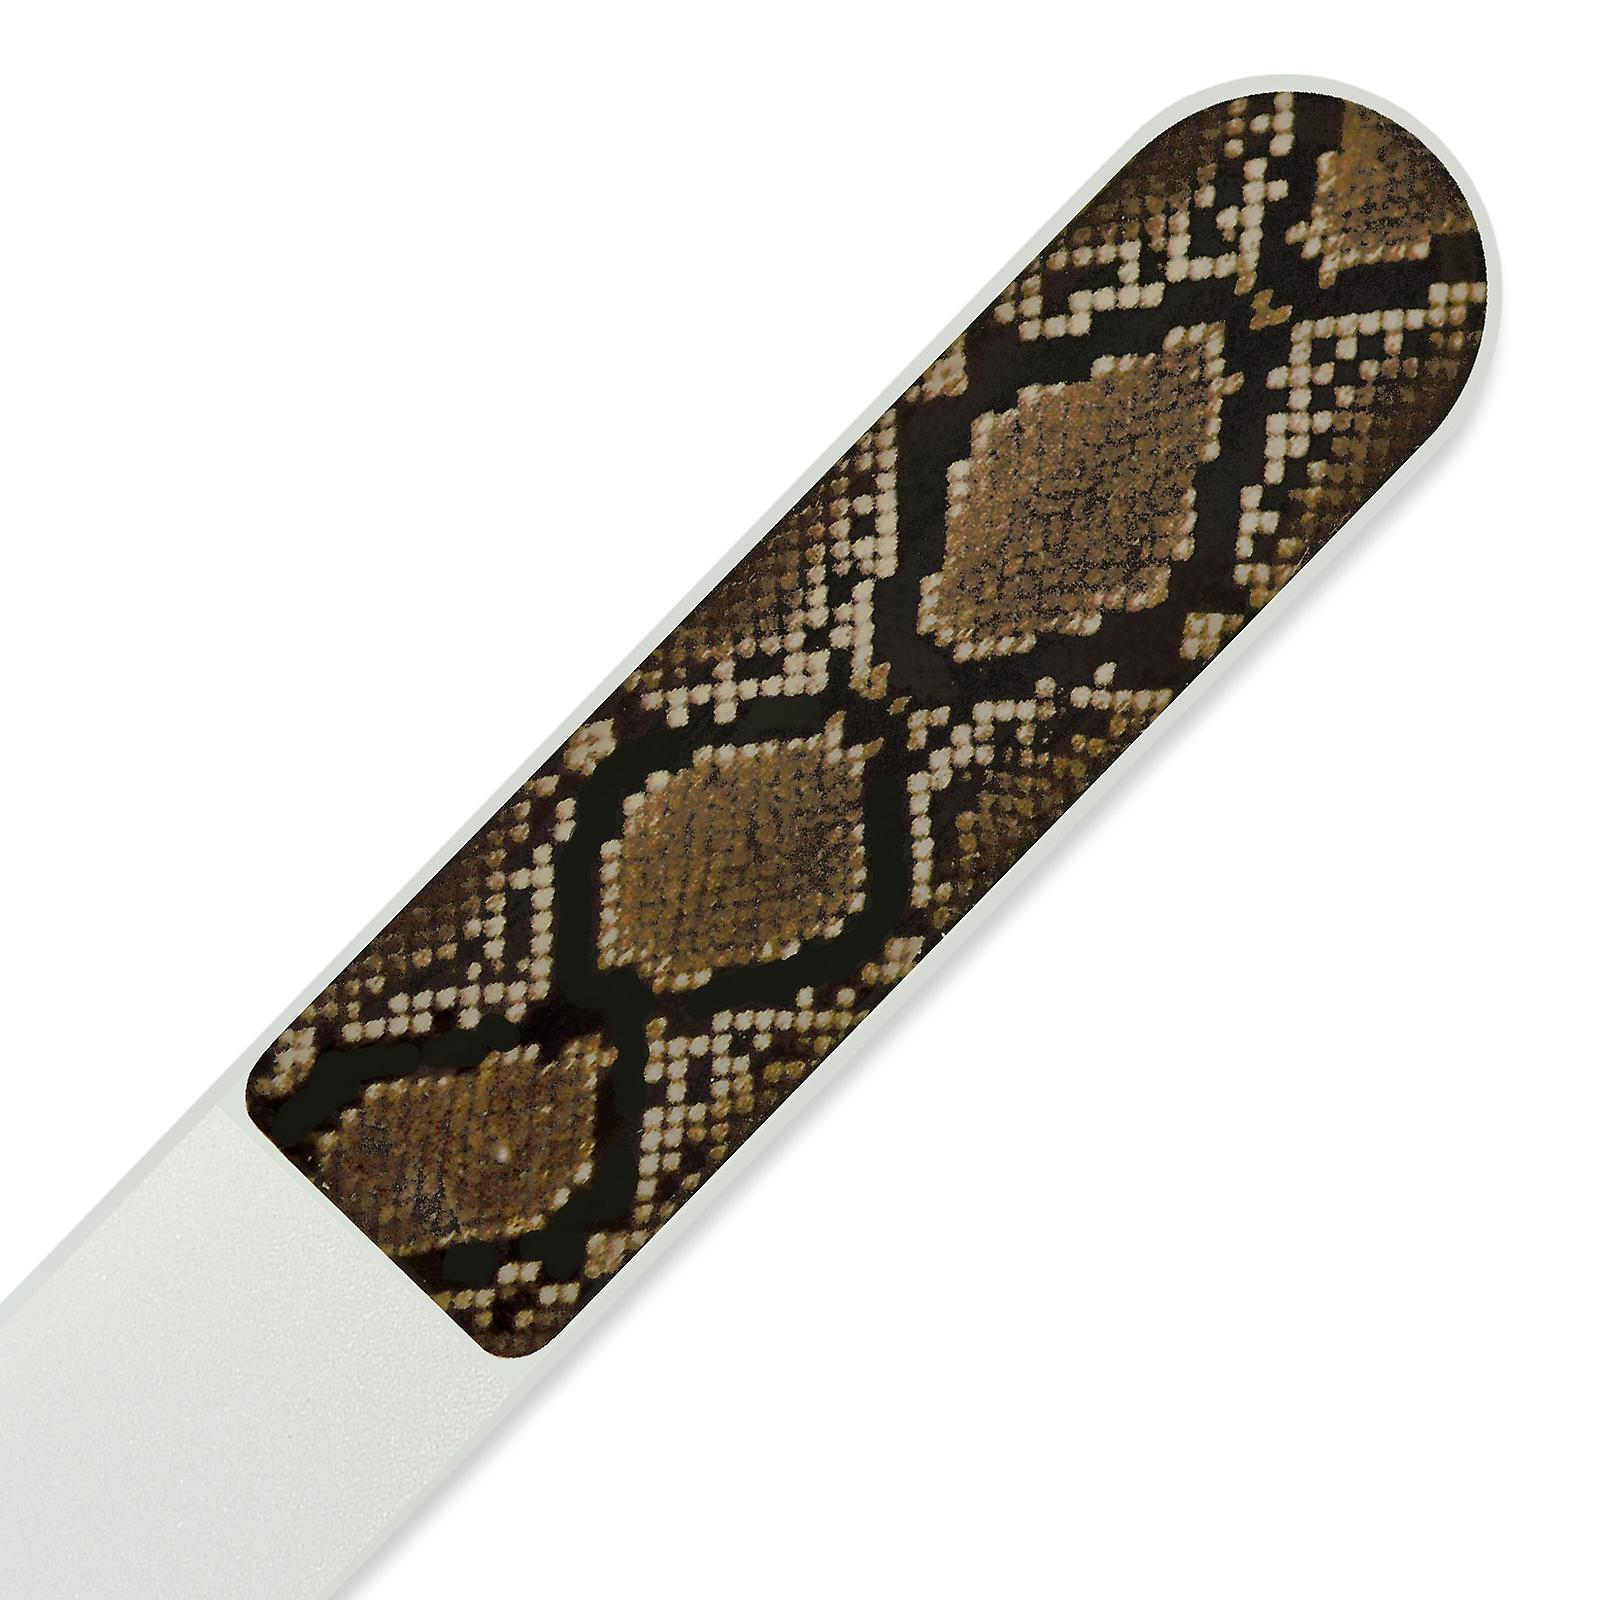 Snake Glass nail file N3D-35